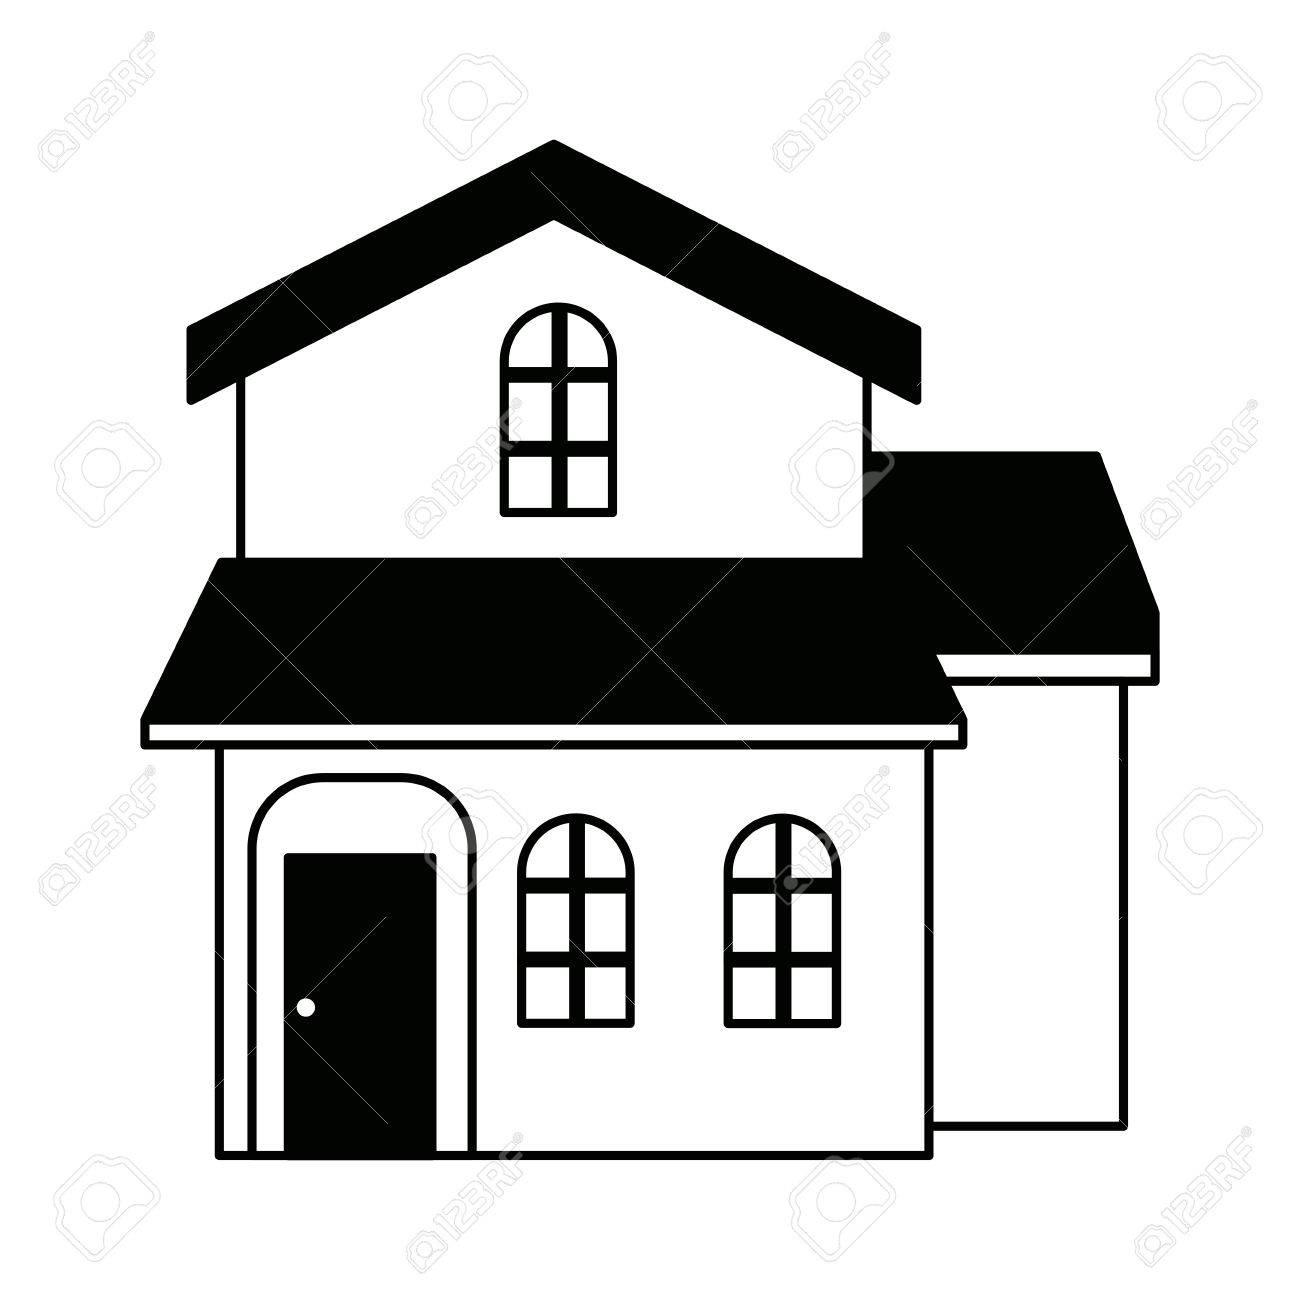 traditional house swiss architecture style isolated on white rh 123rf com house vector art house vector art